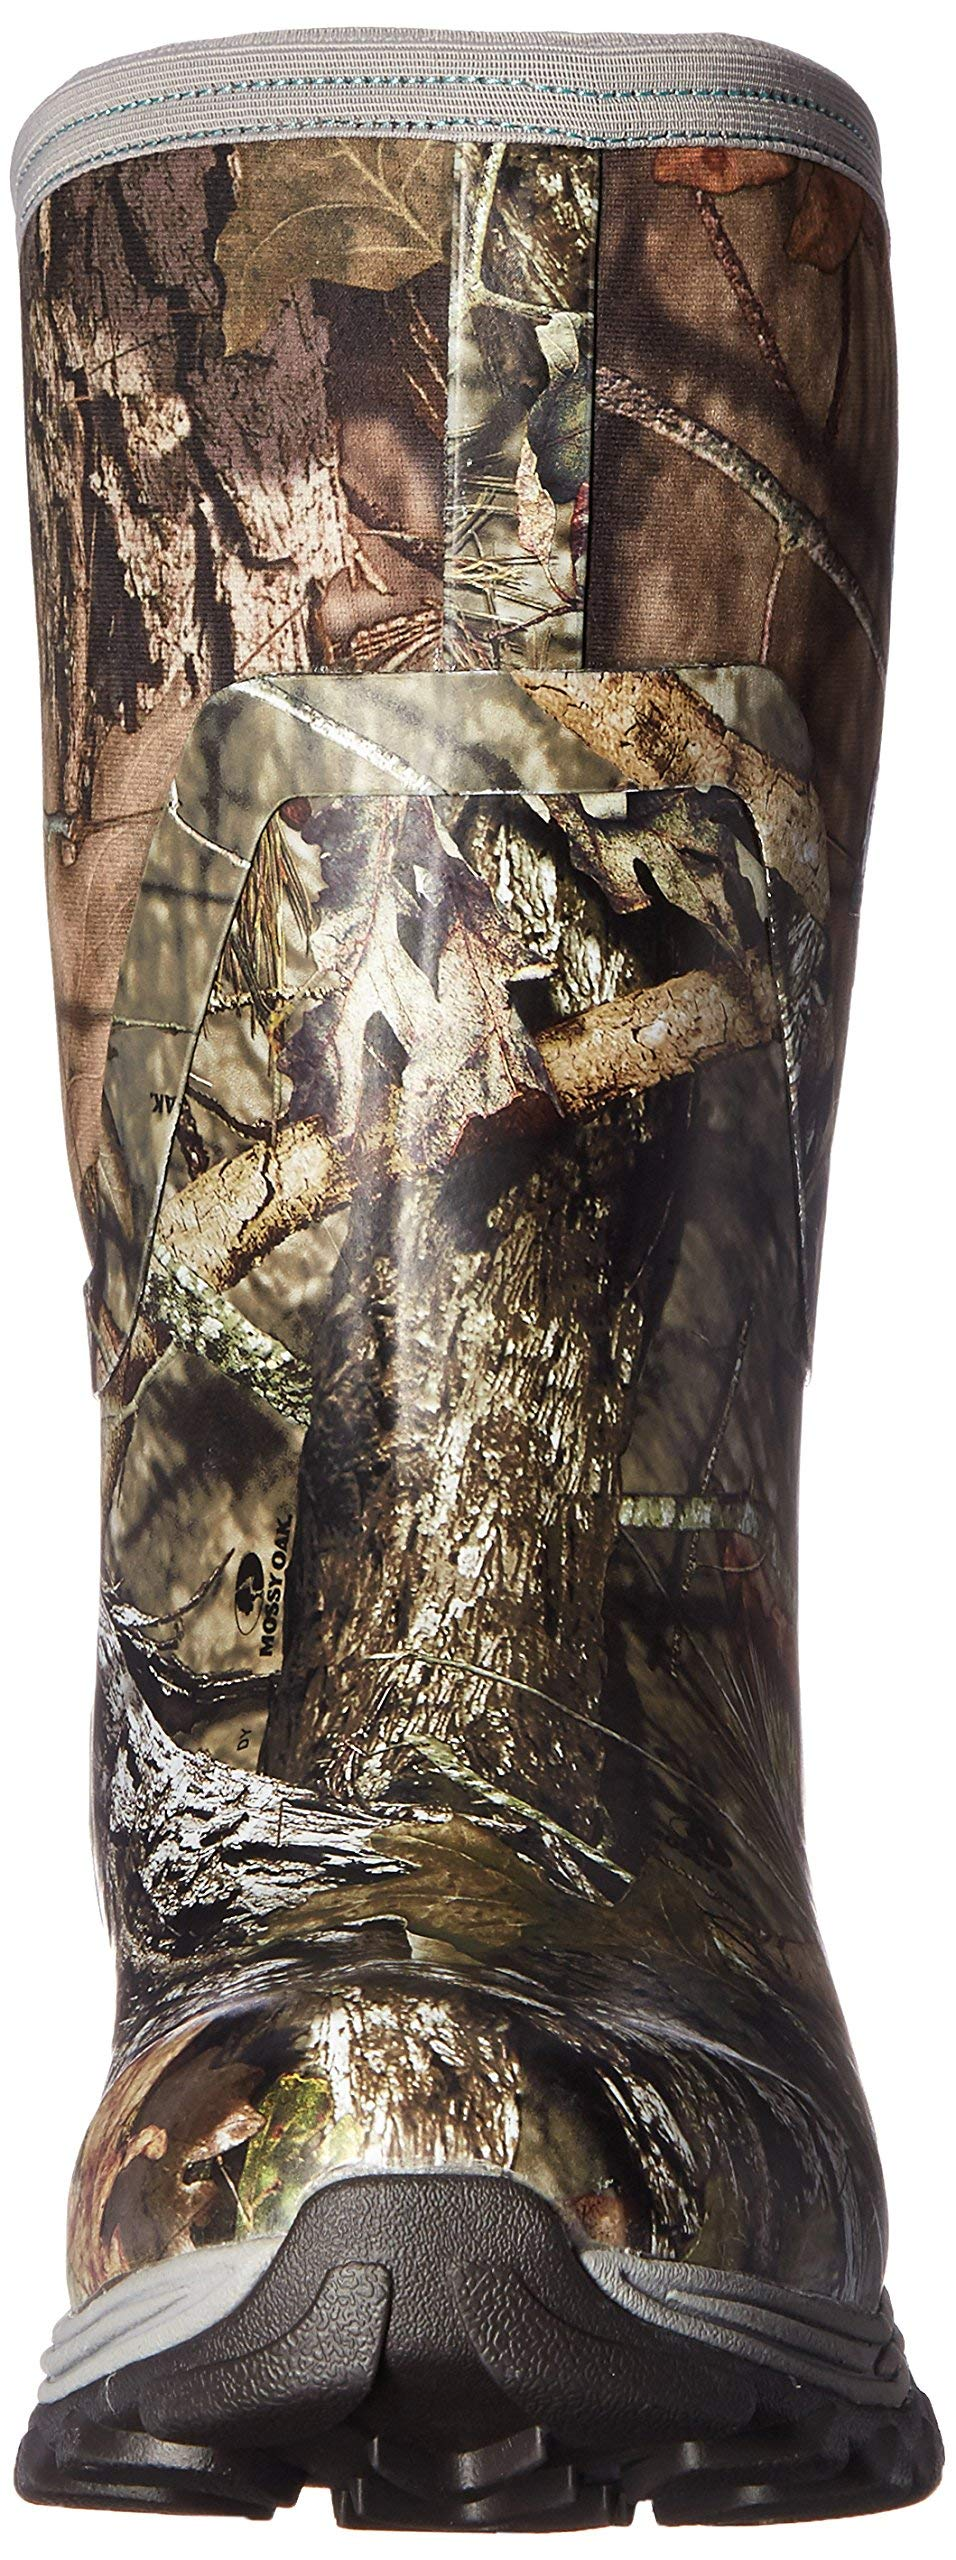 Muck Arctic Hunter Extreme Conditions Rubber Women's Hunting Boots, Mossy Oak/Teal, 7 M US